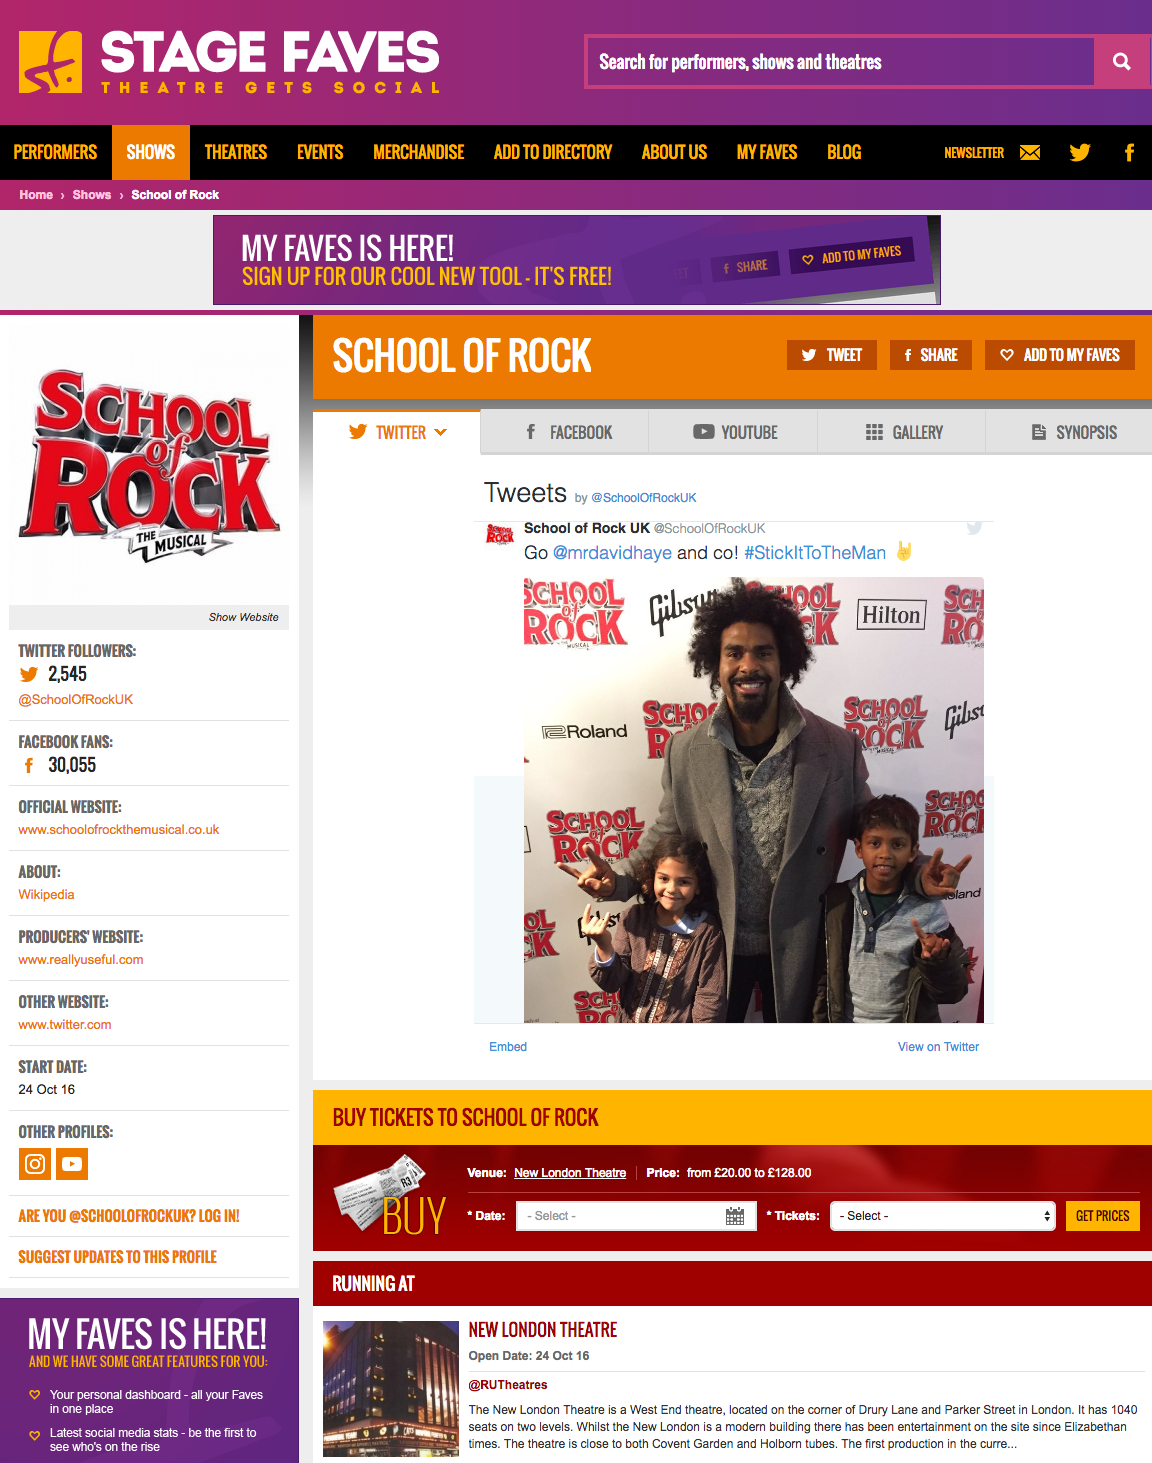 Get all social media for School of Rock & its cast on www.stagefaves.com